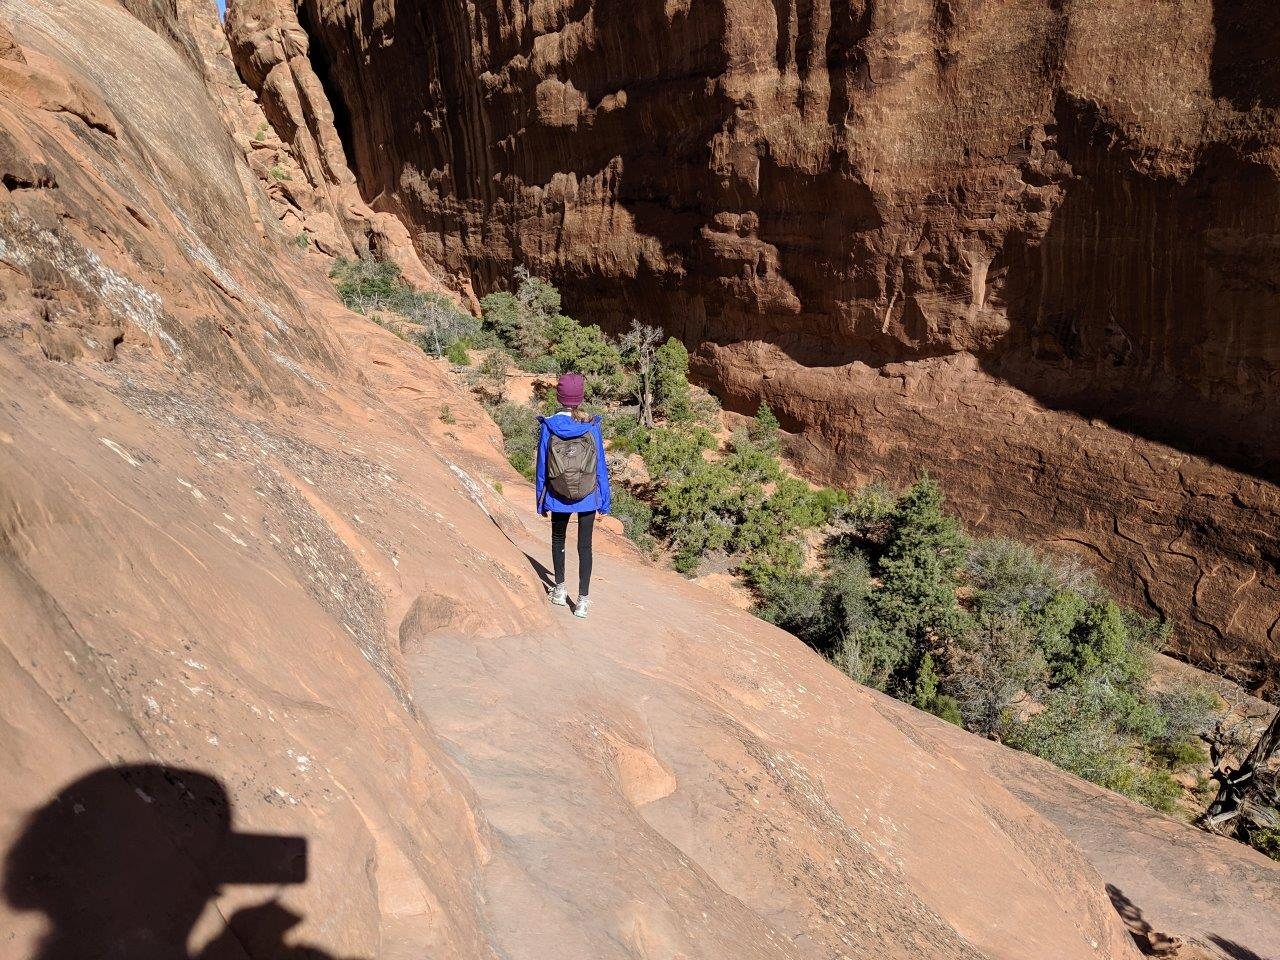 Arches-descend-trail